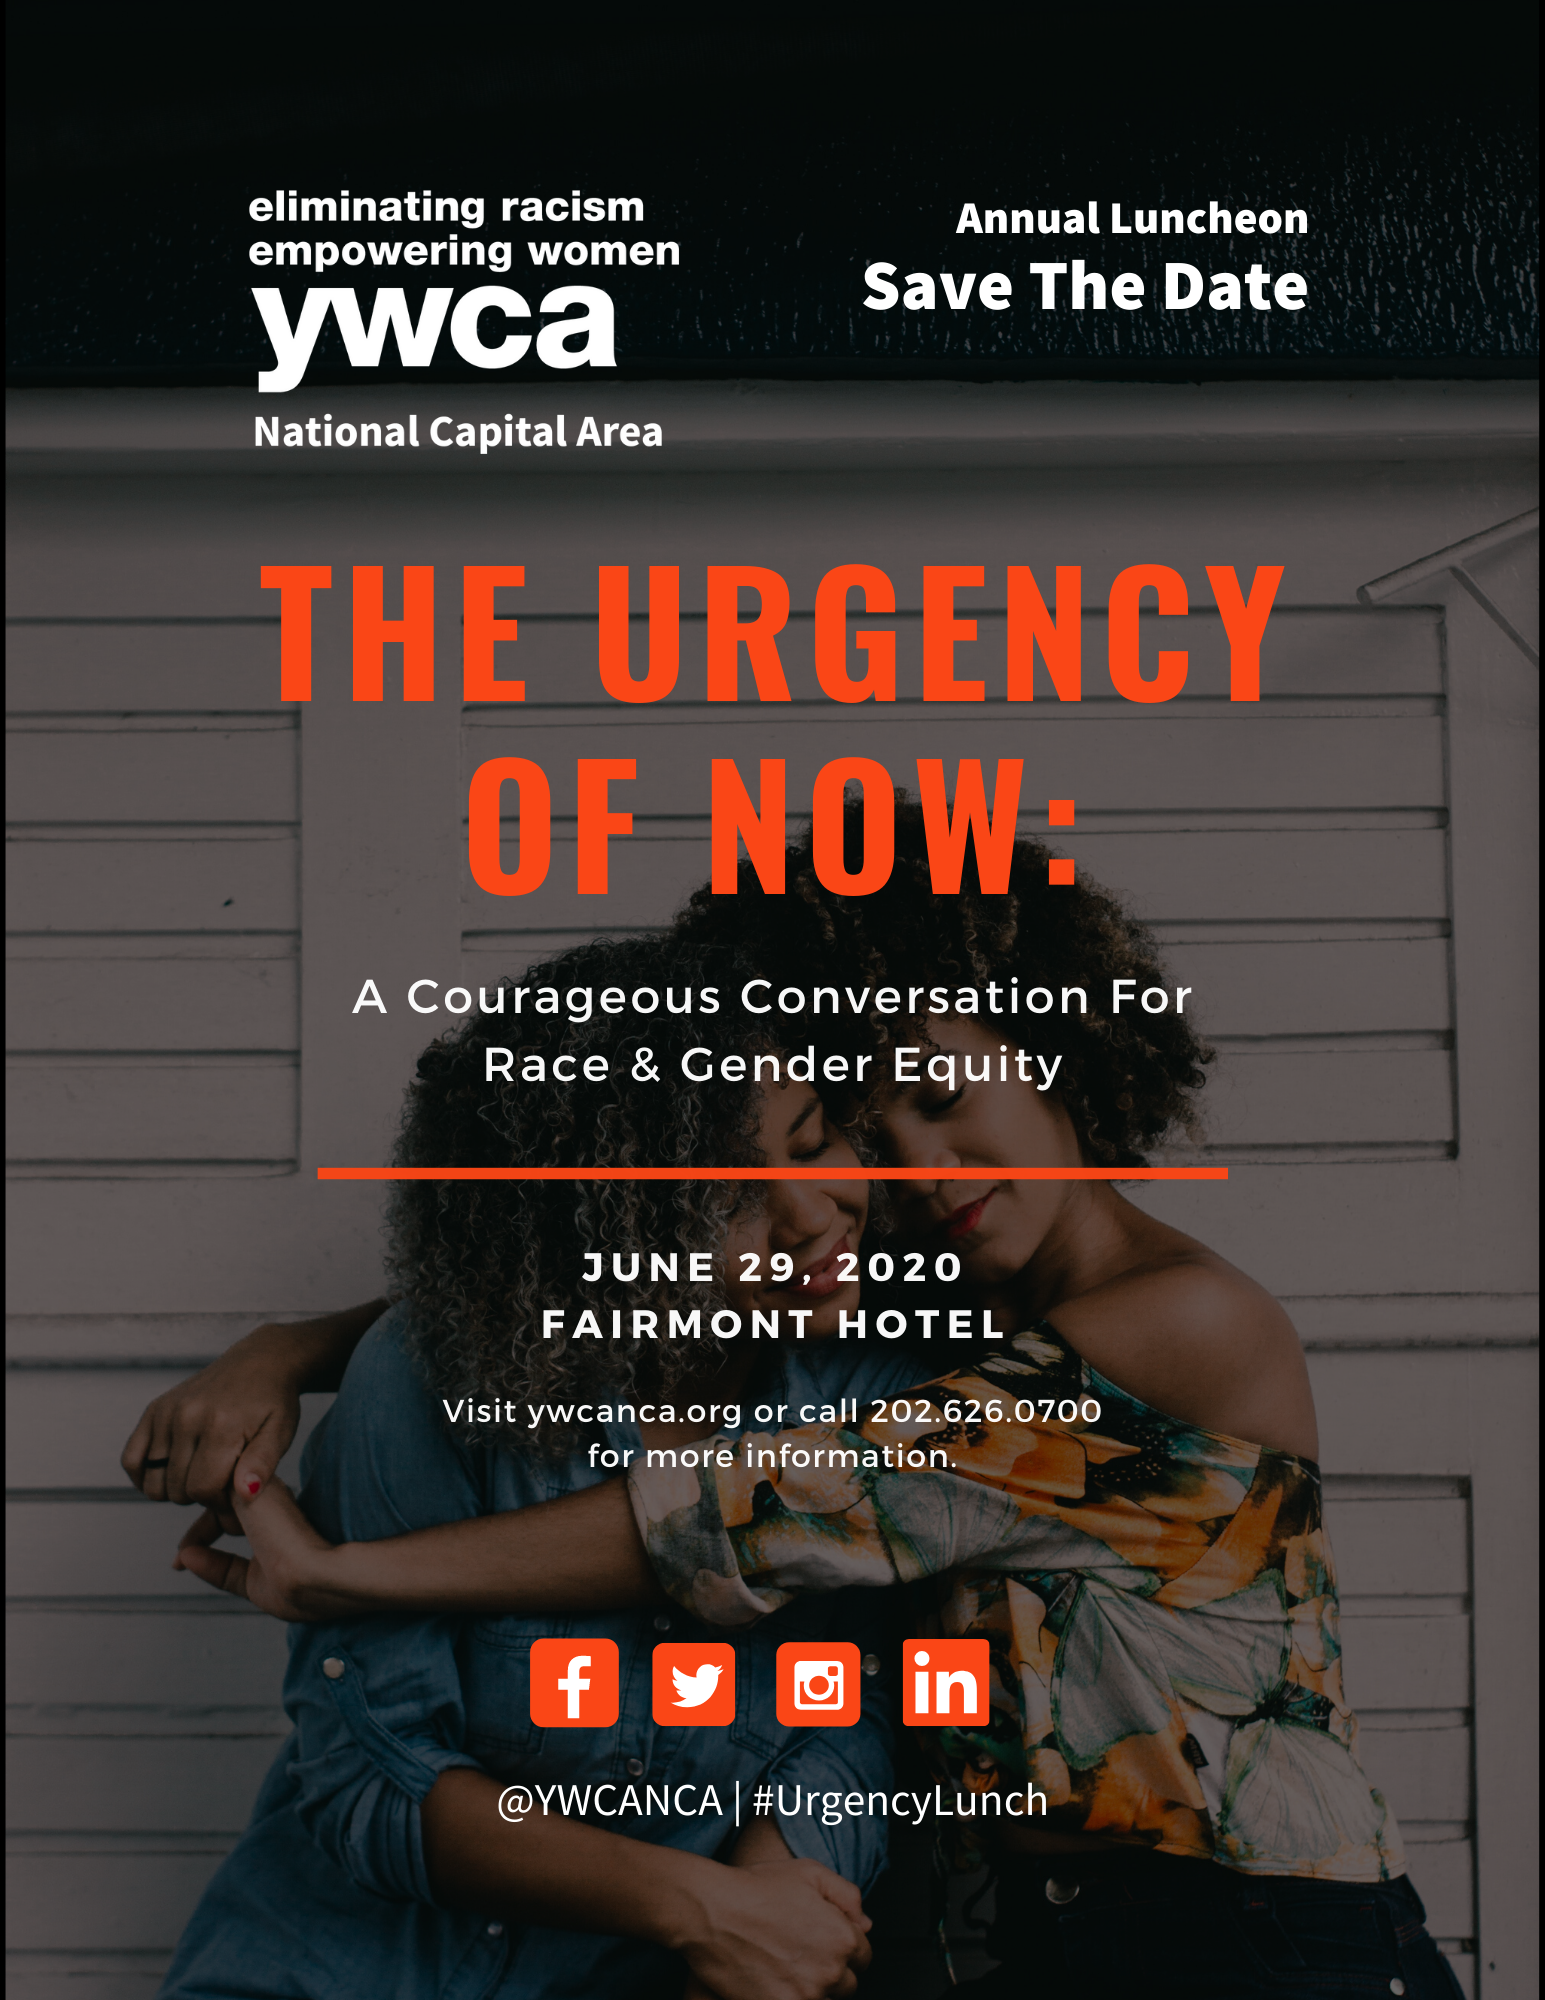 The Urgency of Now: A Courageous Conversation on Race & Gender Equity @ The Fairmont